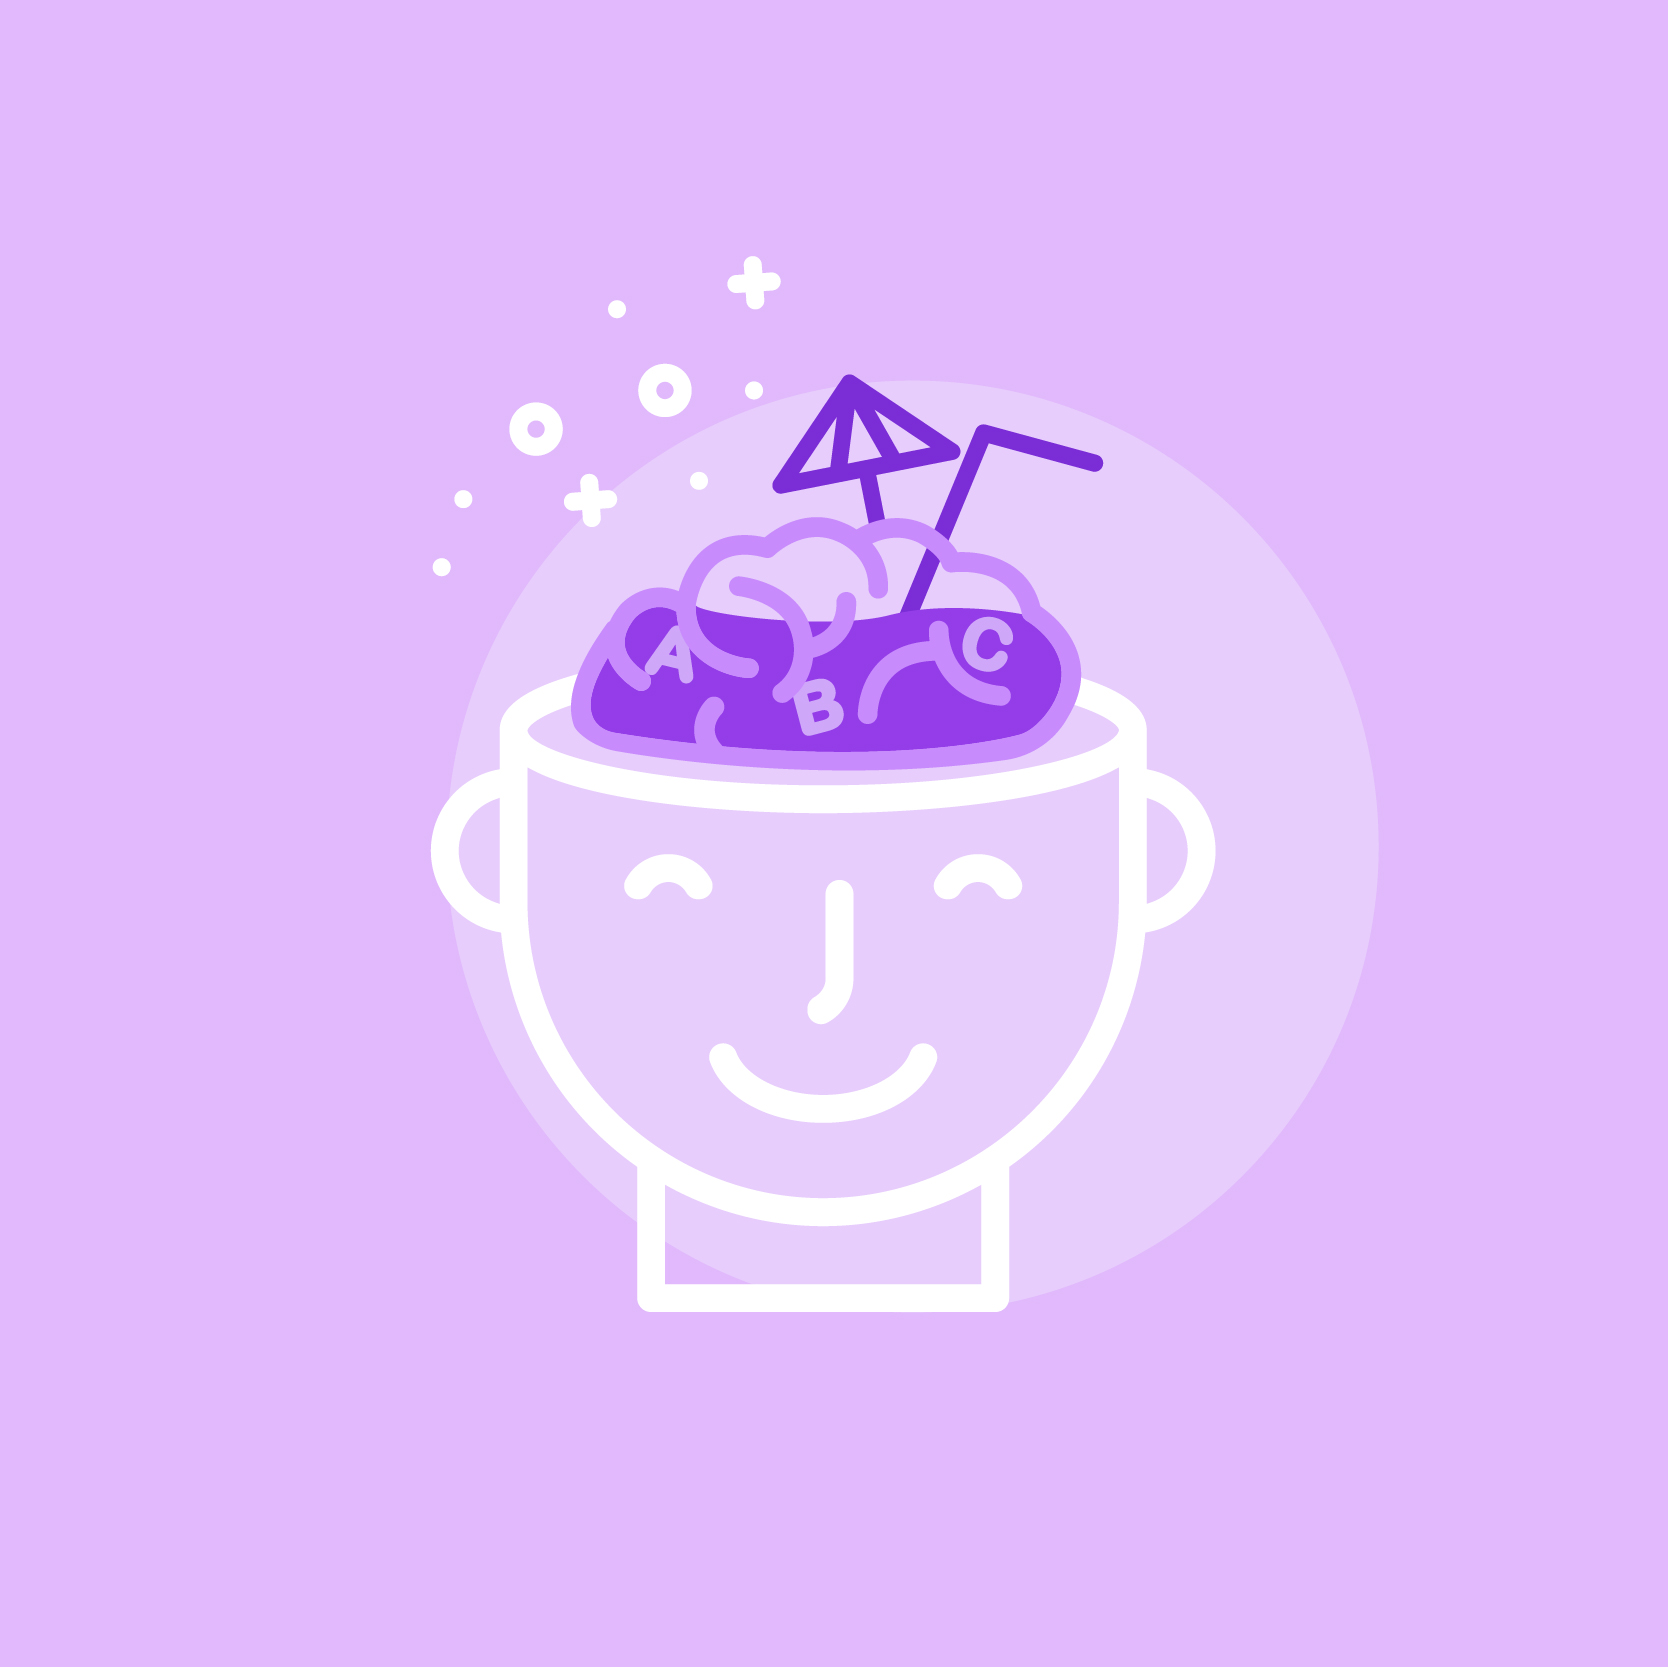 1:1 Brain Juice - Your Chief of Communications. On-demand. Just what the content doctor ordered.